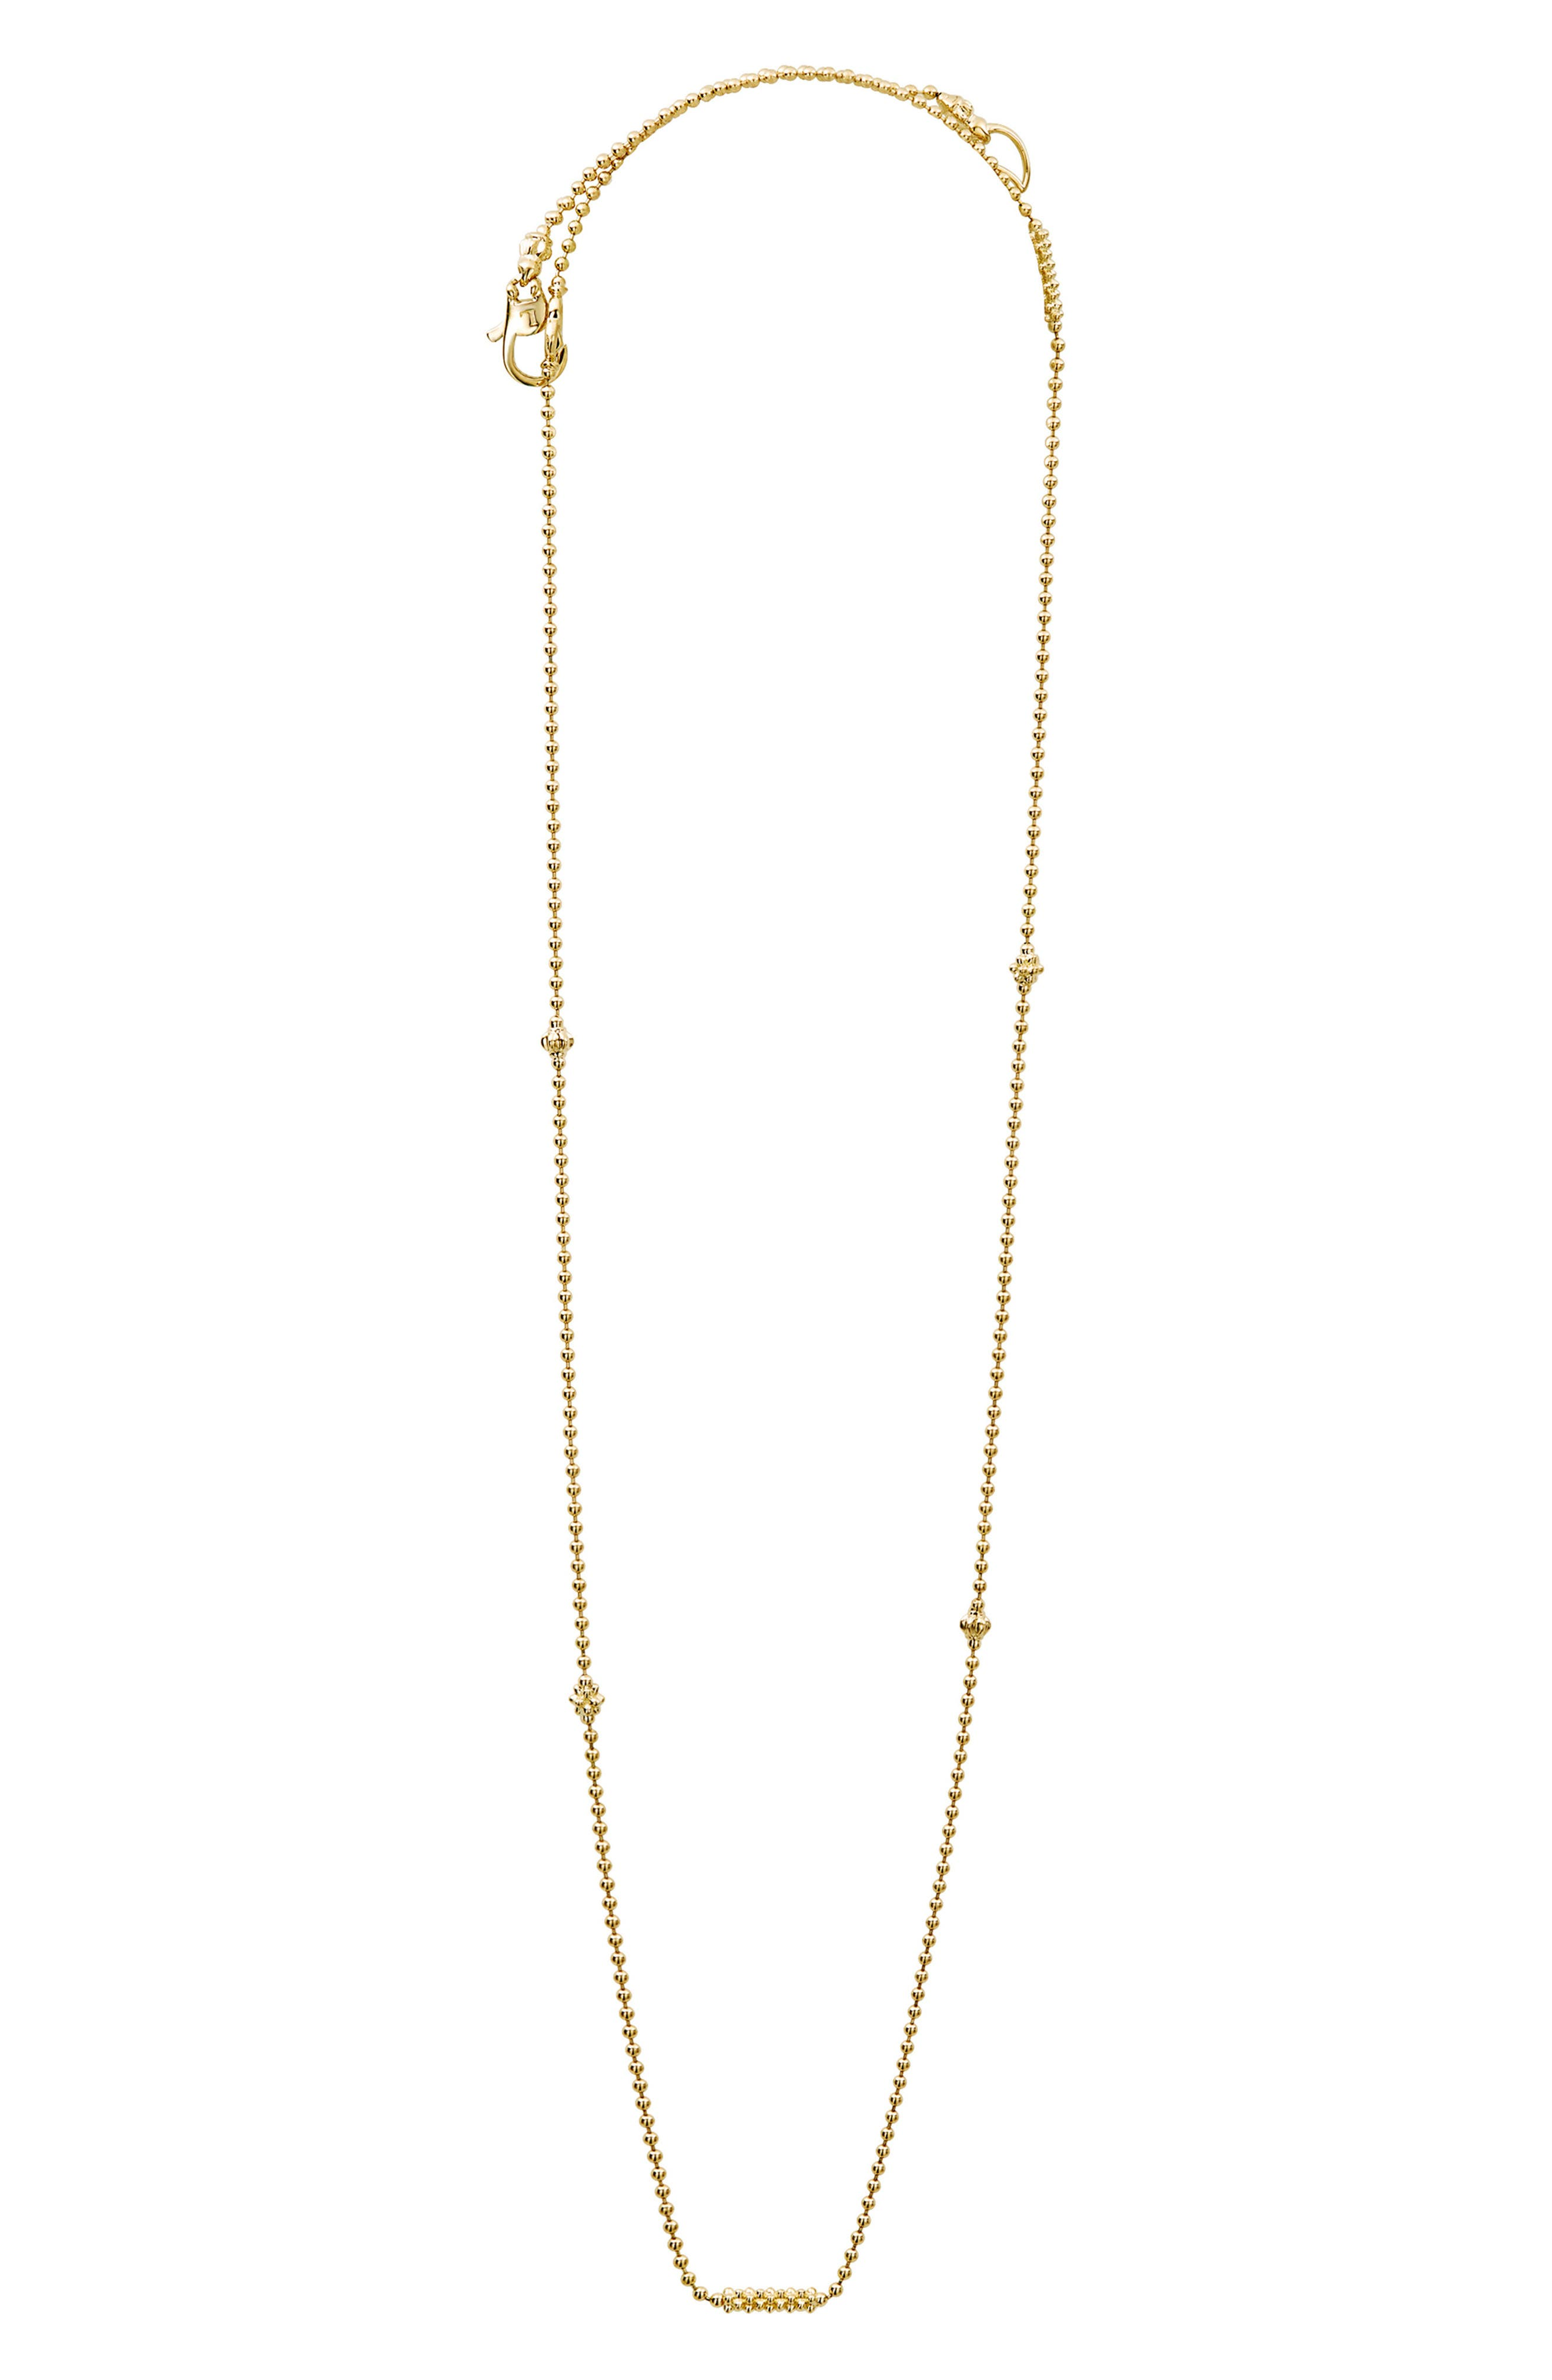 LAGOS Caviar Bars & Cages Chain Necklace